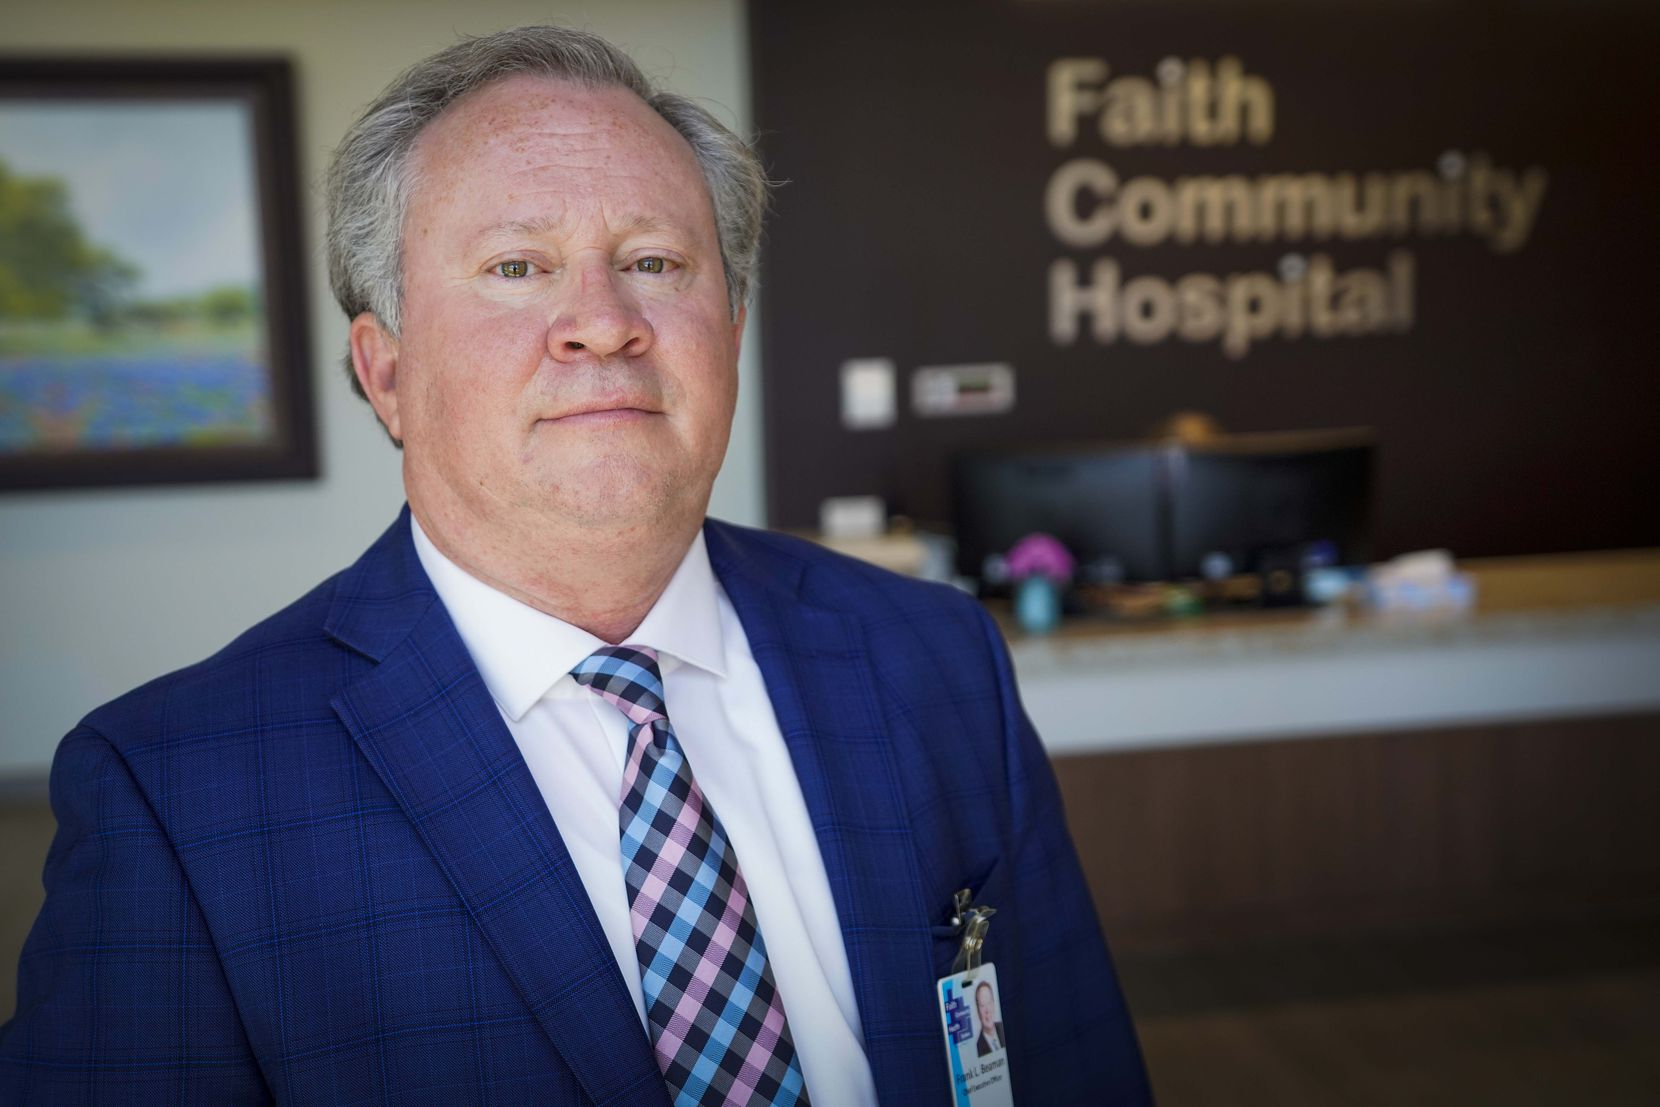 Frank Beaman, CEO of Faith Community Health System, says many rural hospitals stopped delivering babies, so mothers now come to Jacksboro from neighboring counties to give birth.